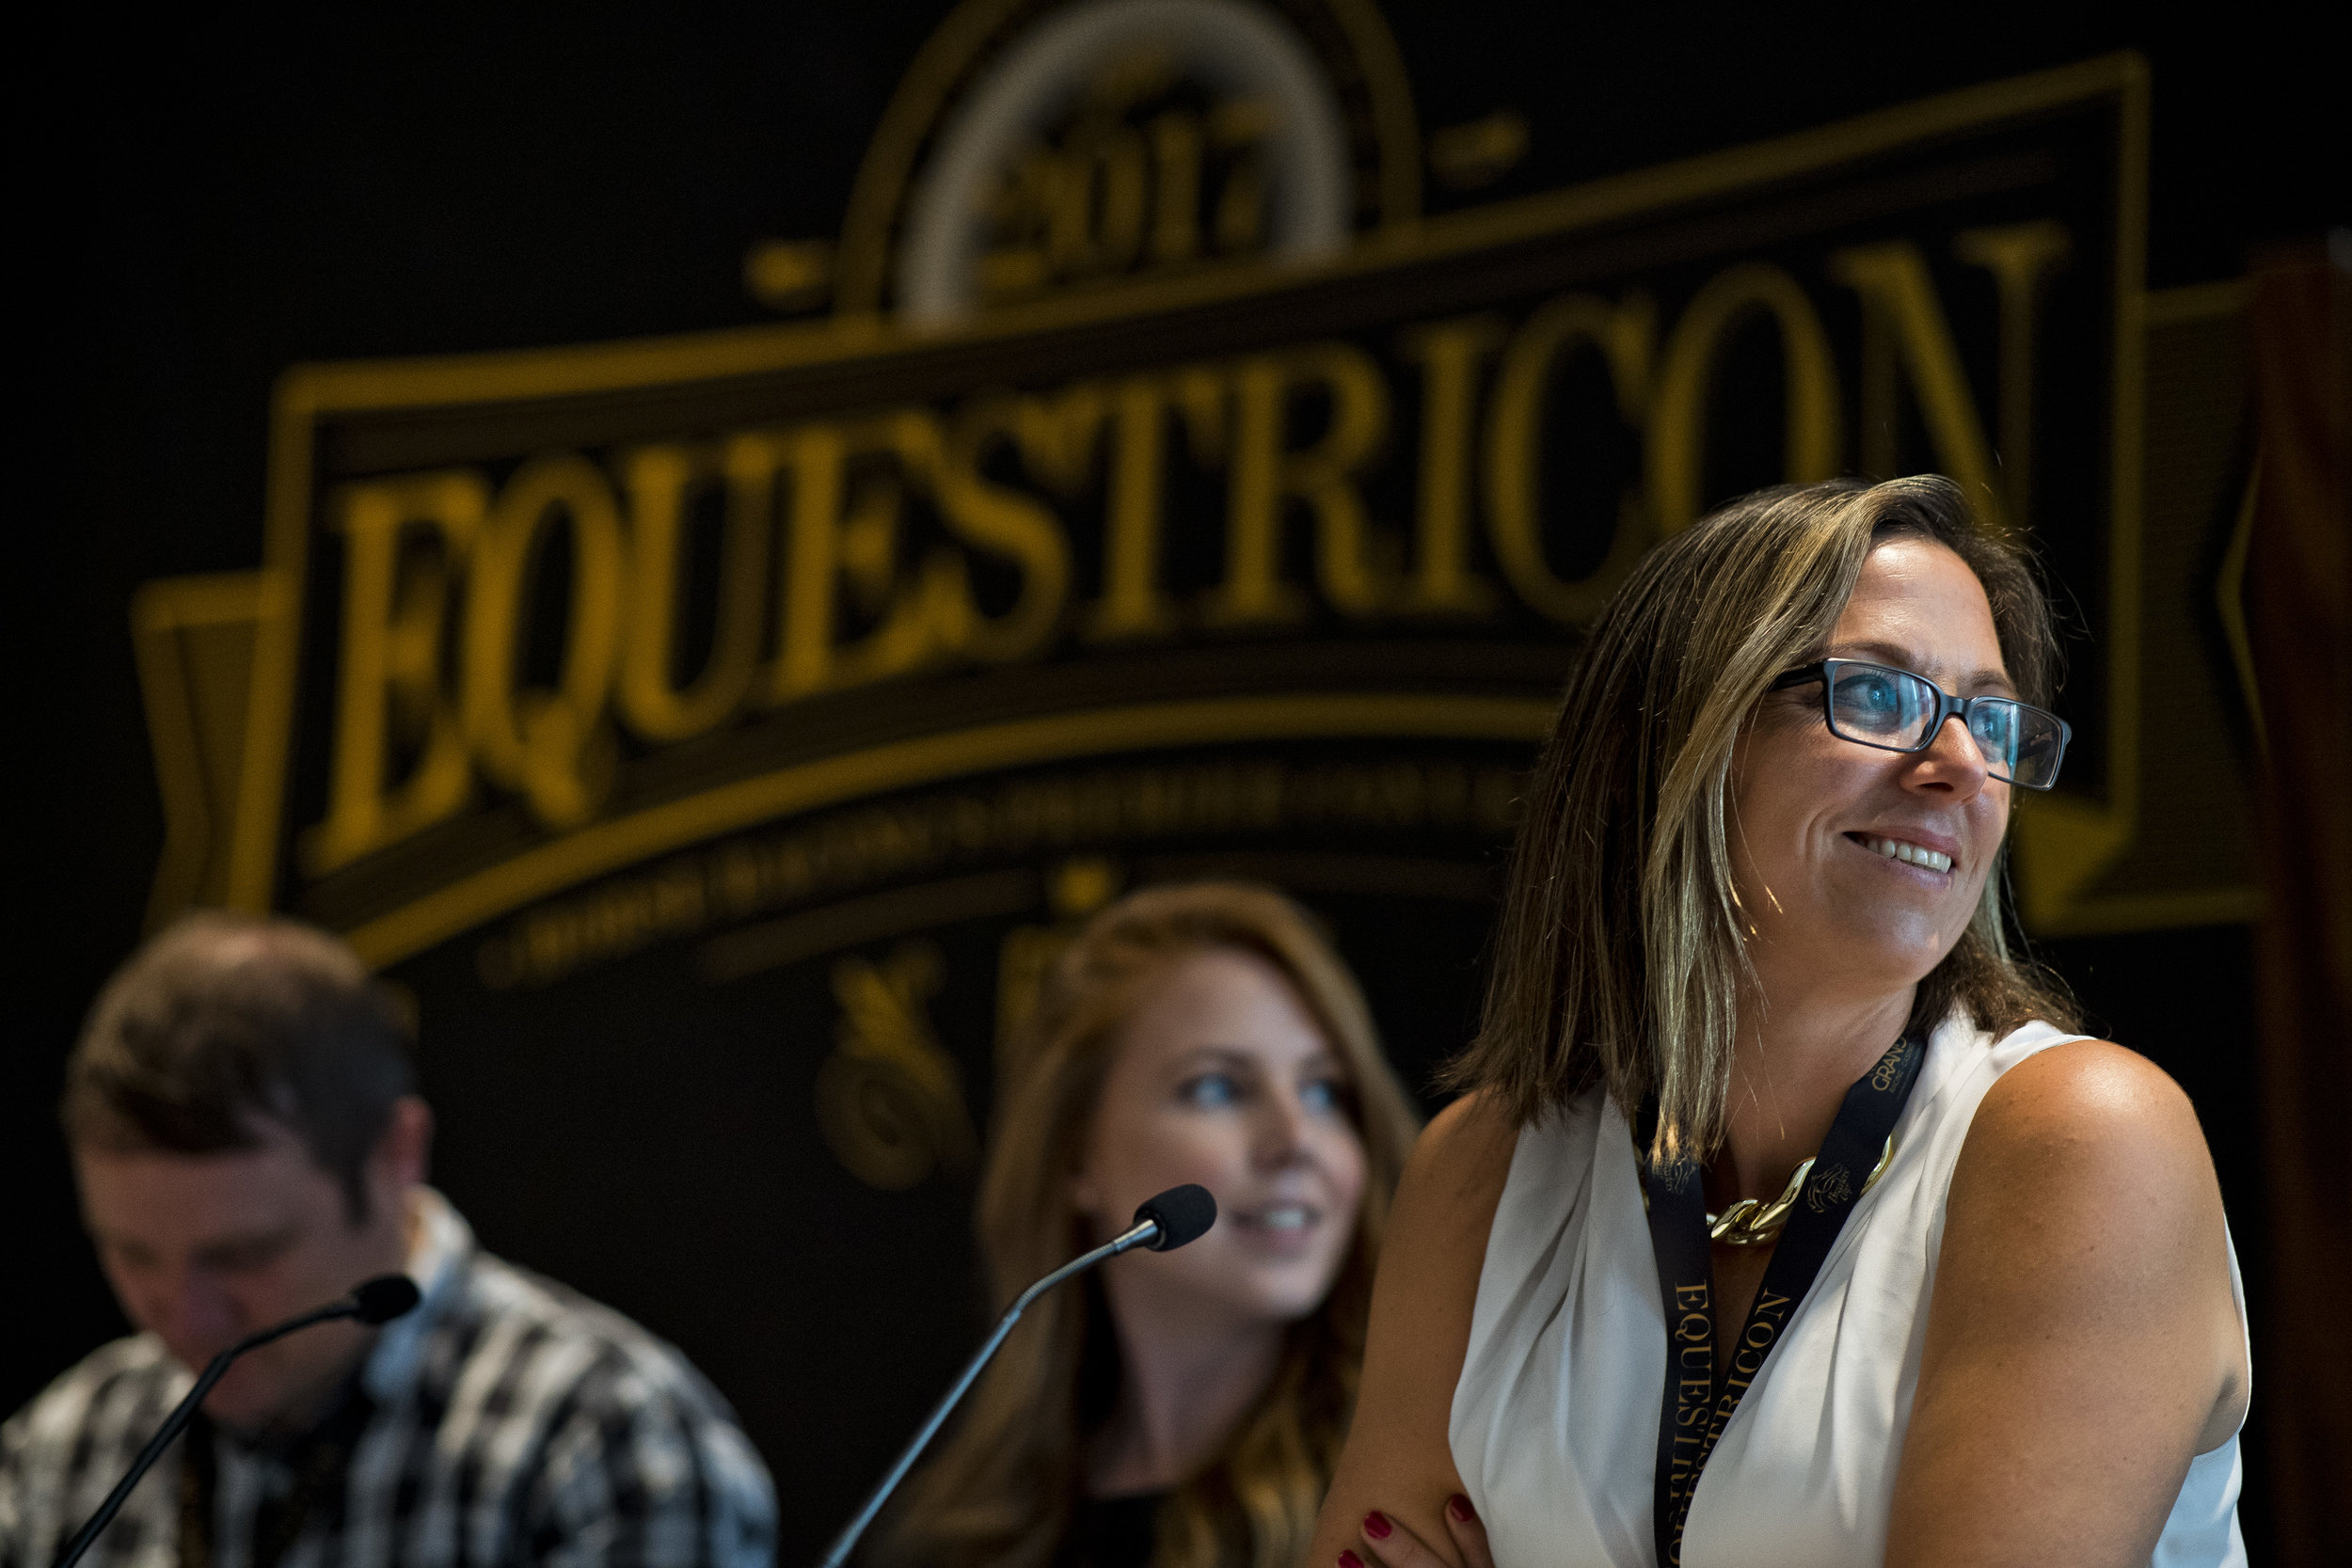 """Panelists on the """"Social Media in Horse Racing"""" Panel, presented by MHBA and Maryland Million, Ltd.at Equestricon 2017. Eclipse Sportswire."""